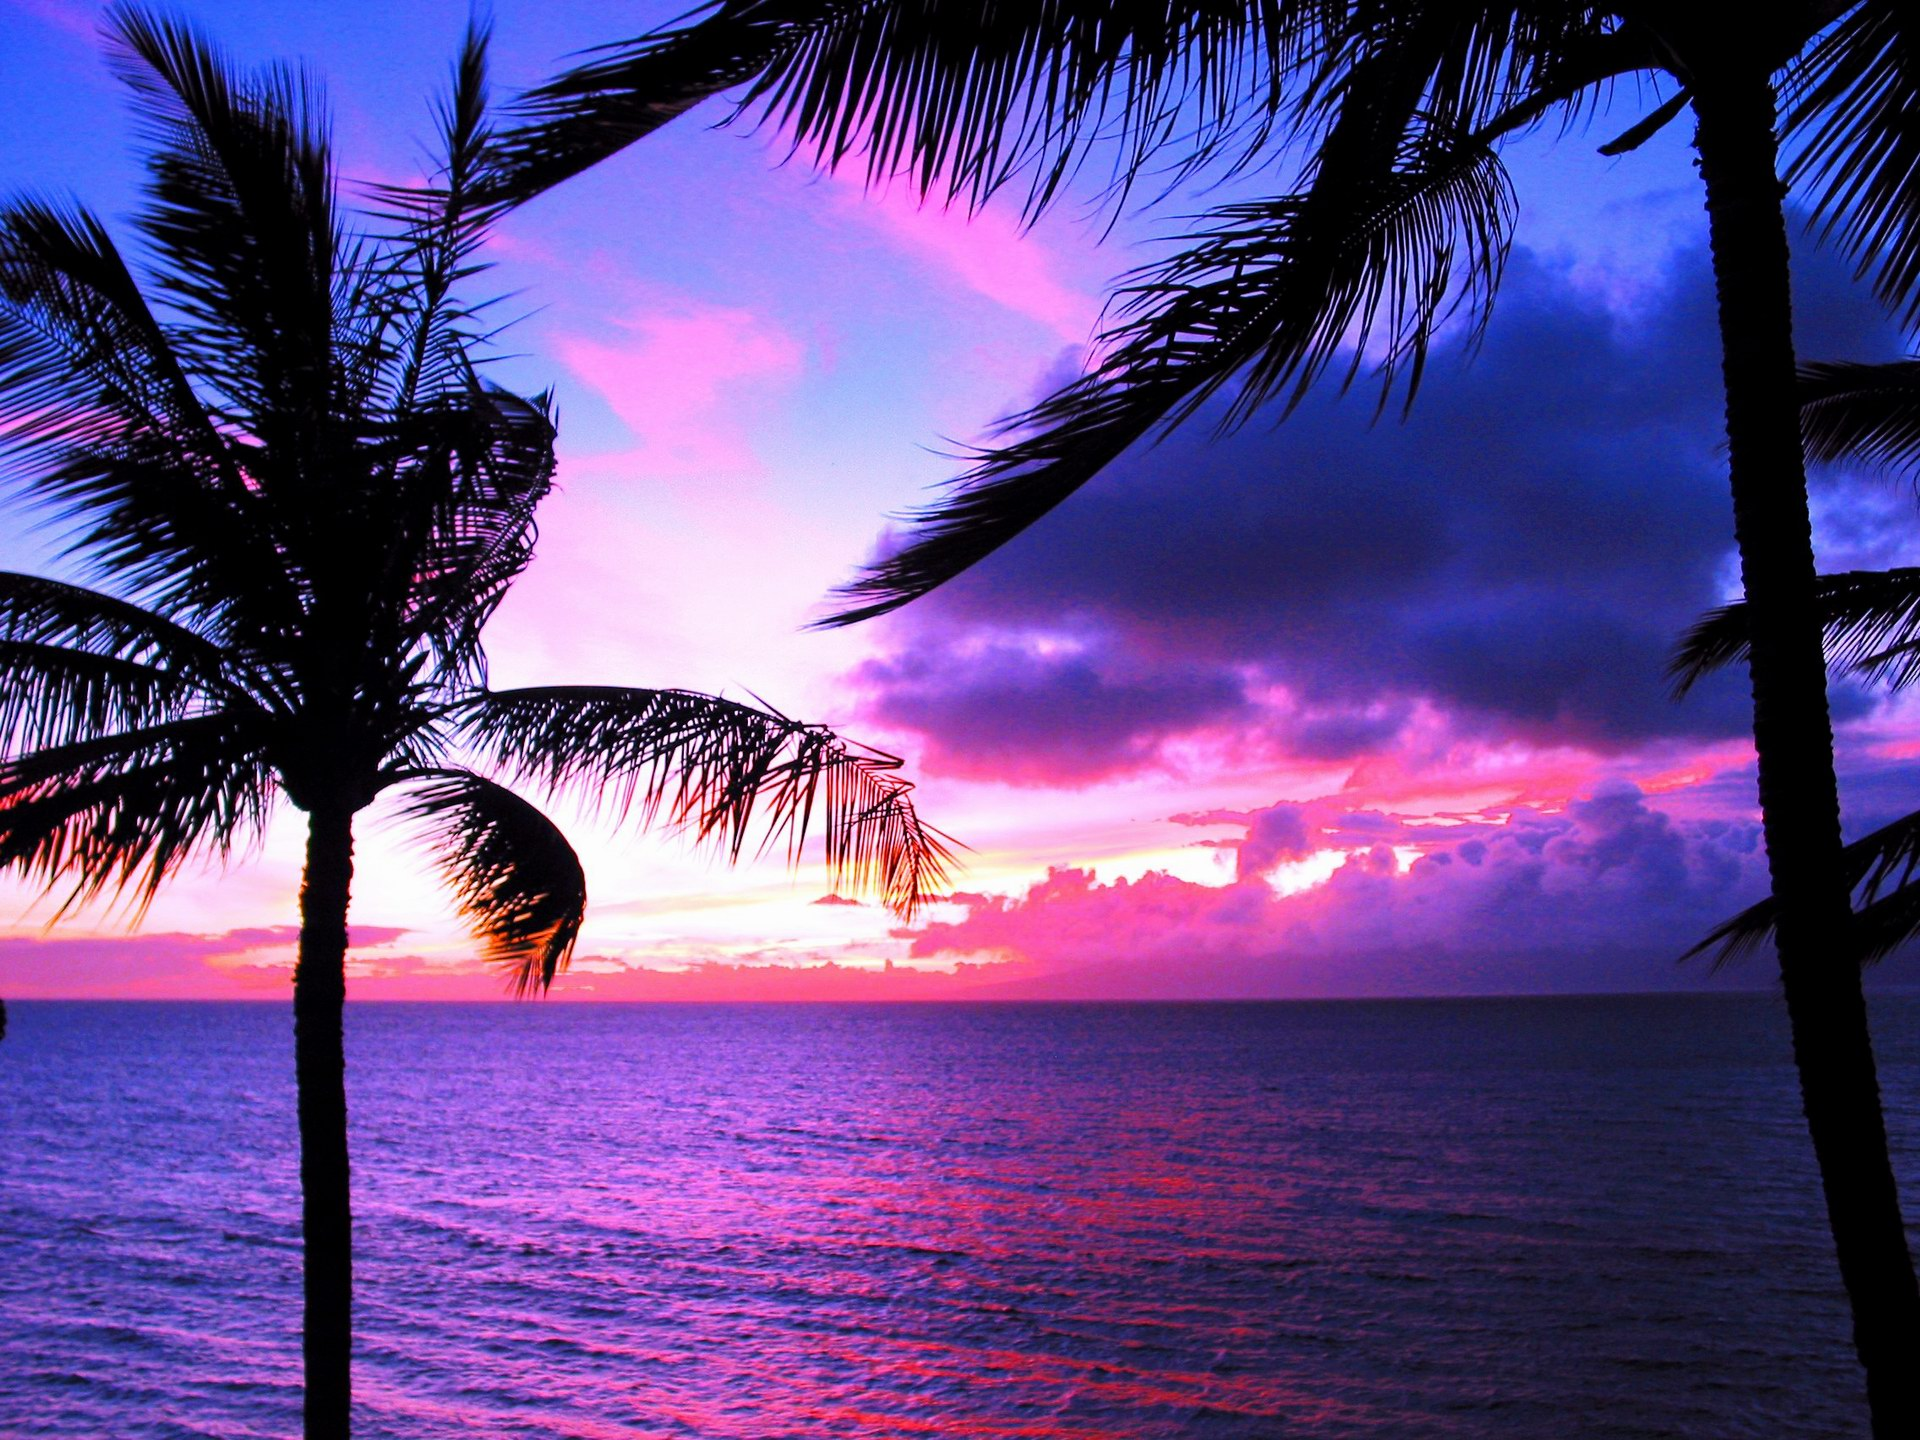 Hd Tropical Island Beach Paradise Wallpapers And Backgrounds: Hawaii Sunsets Wallpaper